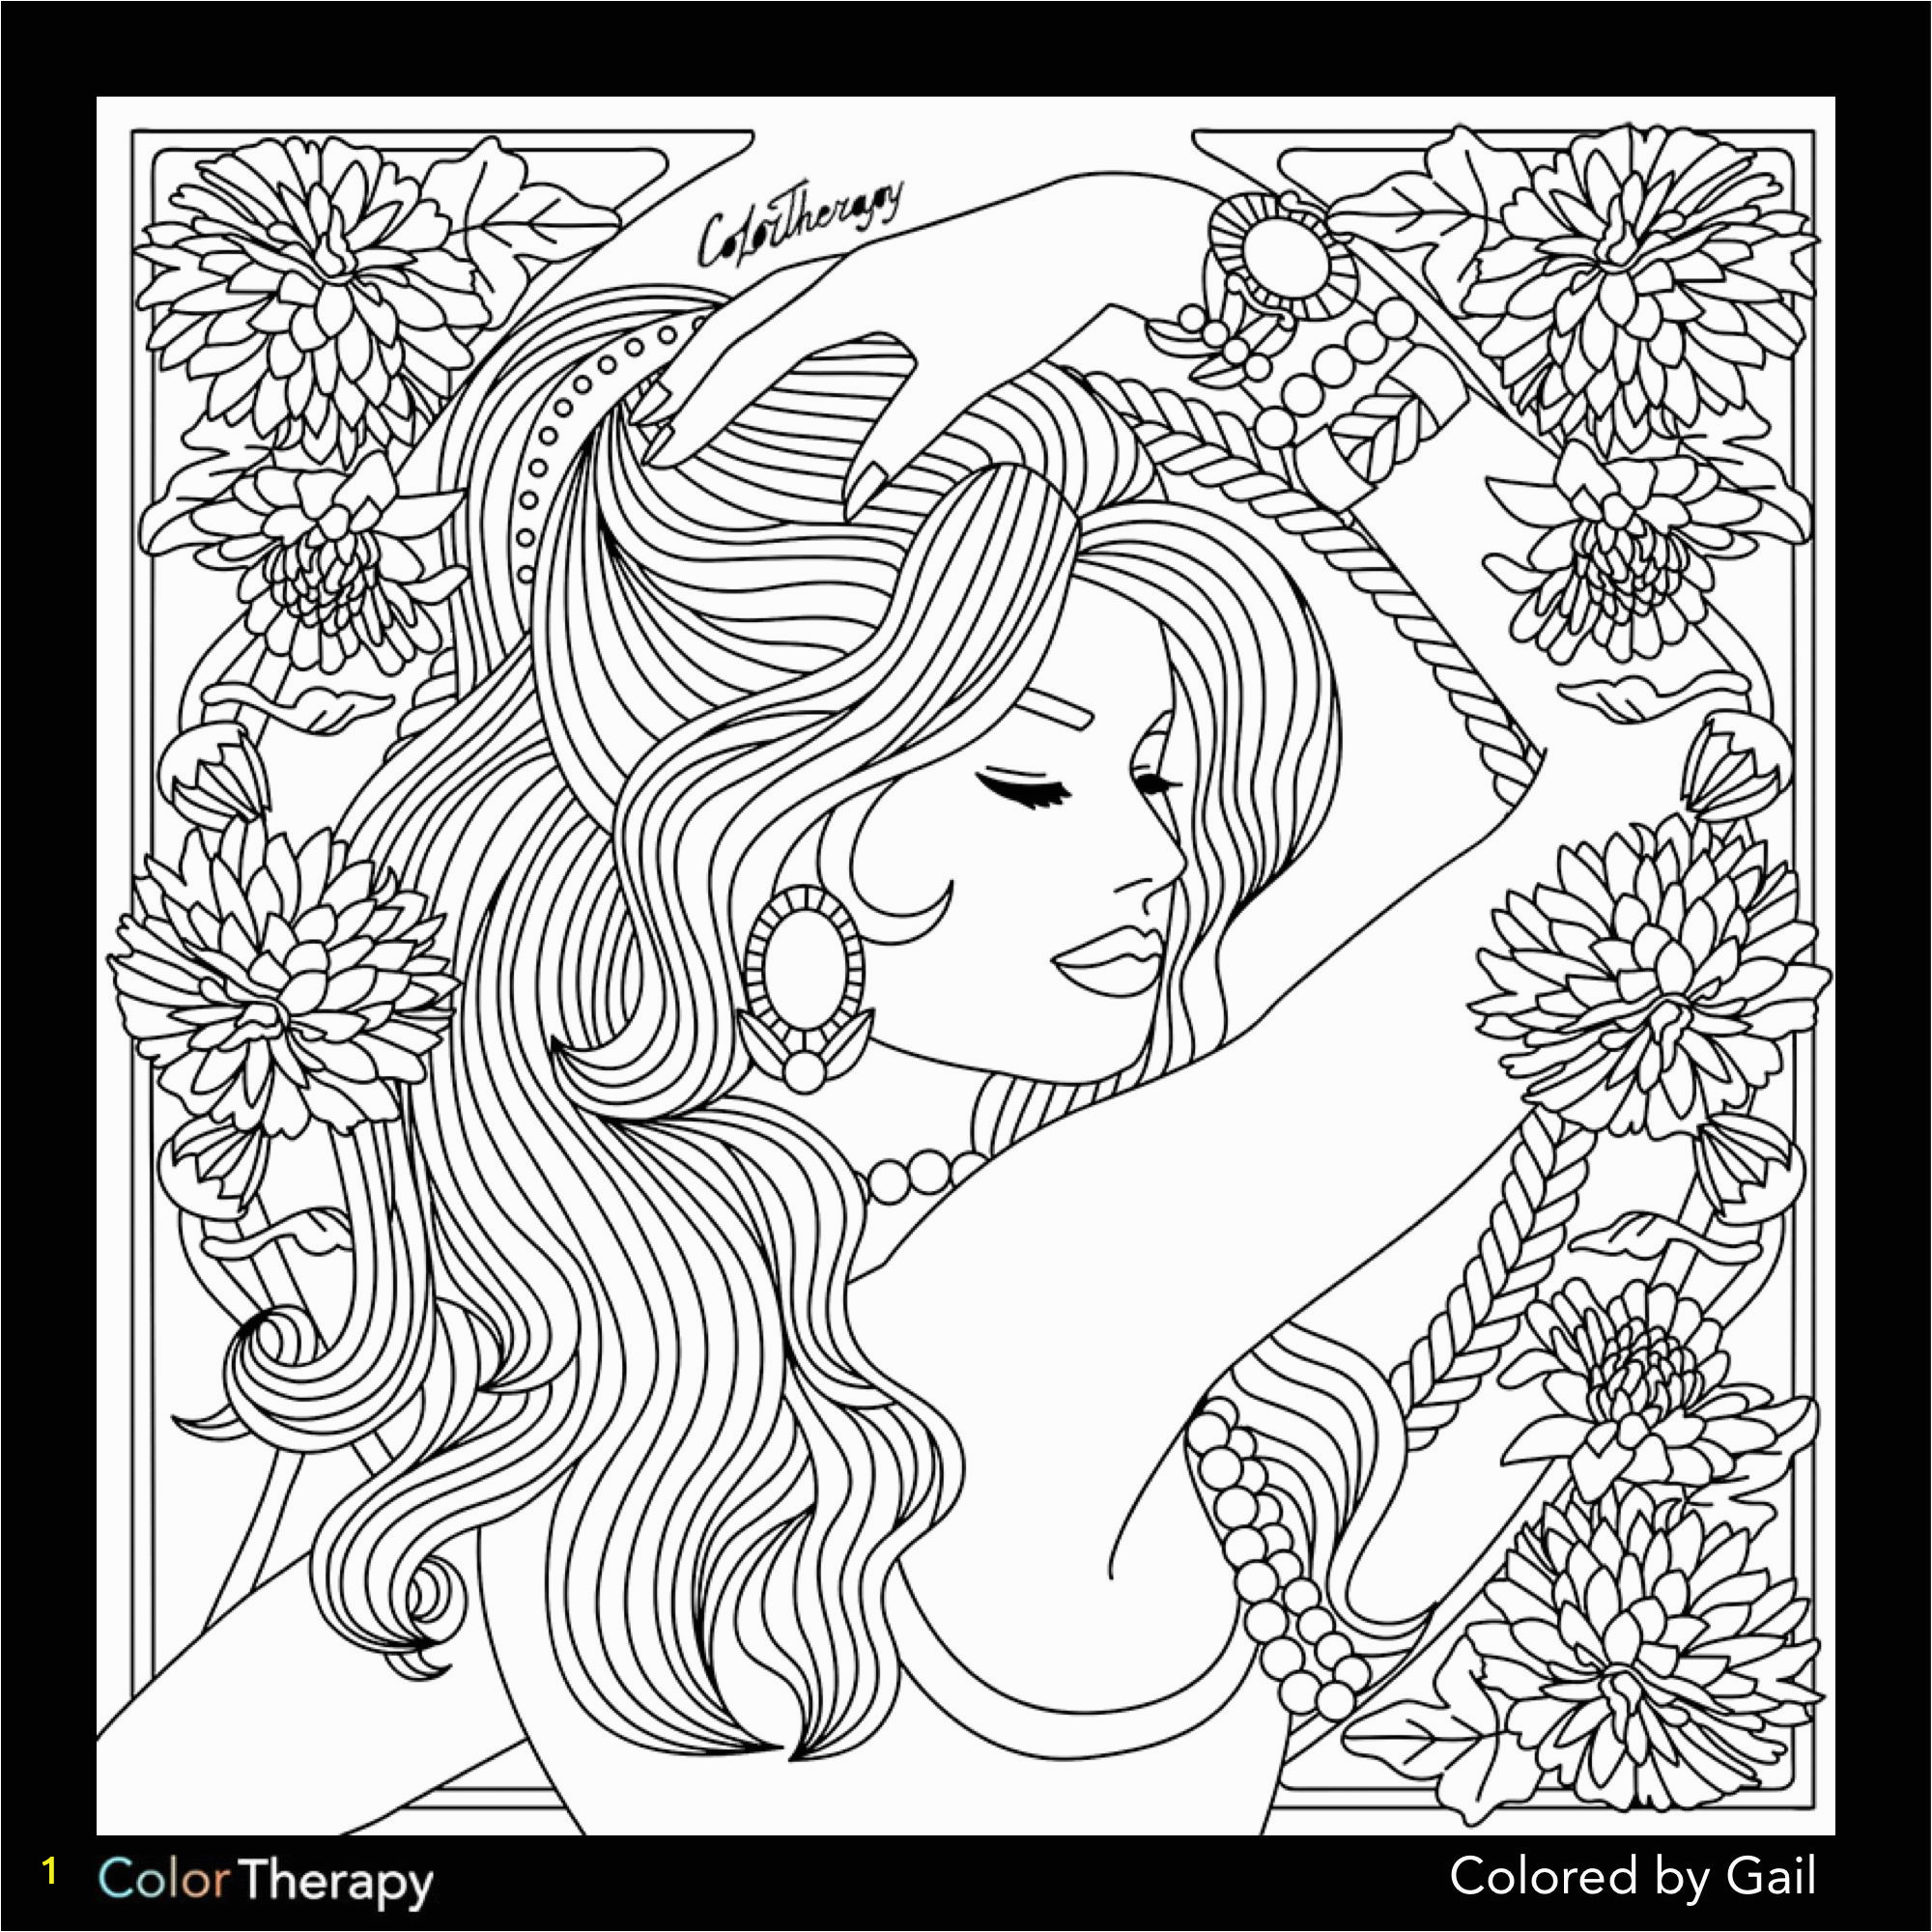 Coloring Pages for Occupational therapy I Colored This Myself Using Color therapy App It Was so Fun